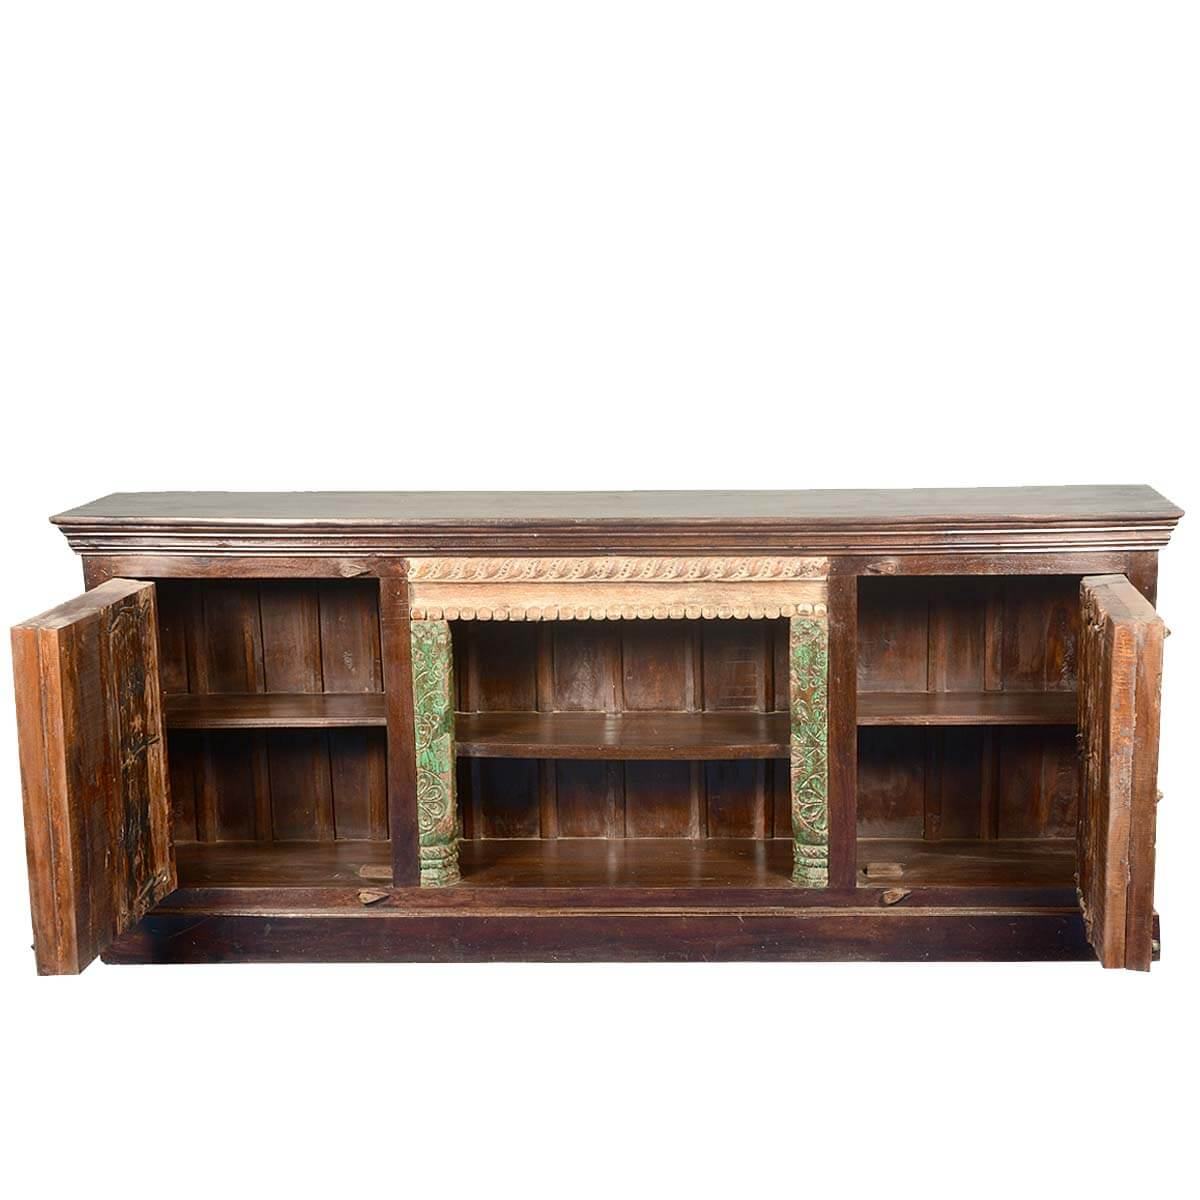 Rustic teak reclaimed wood gothic old doors media console Rustic tv stands